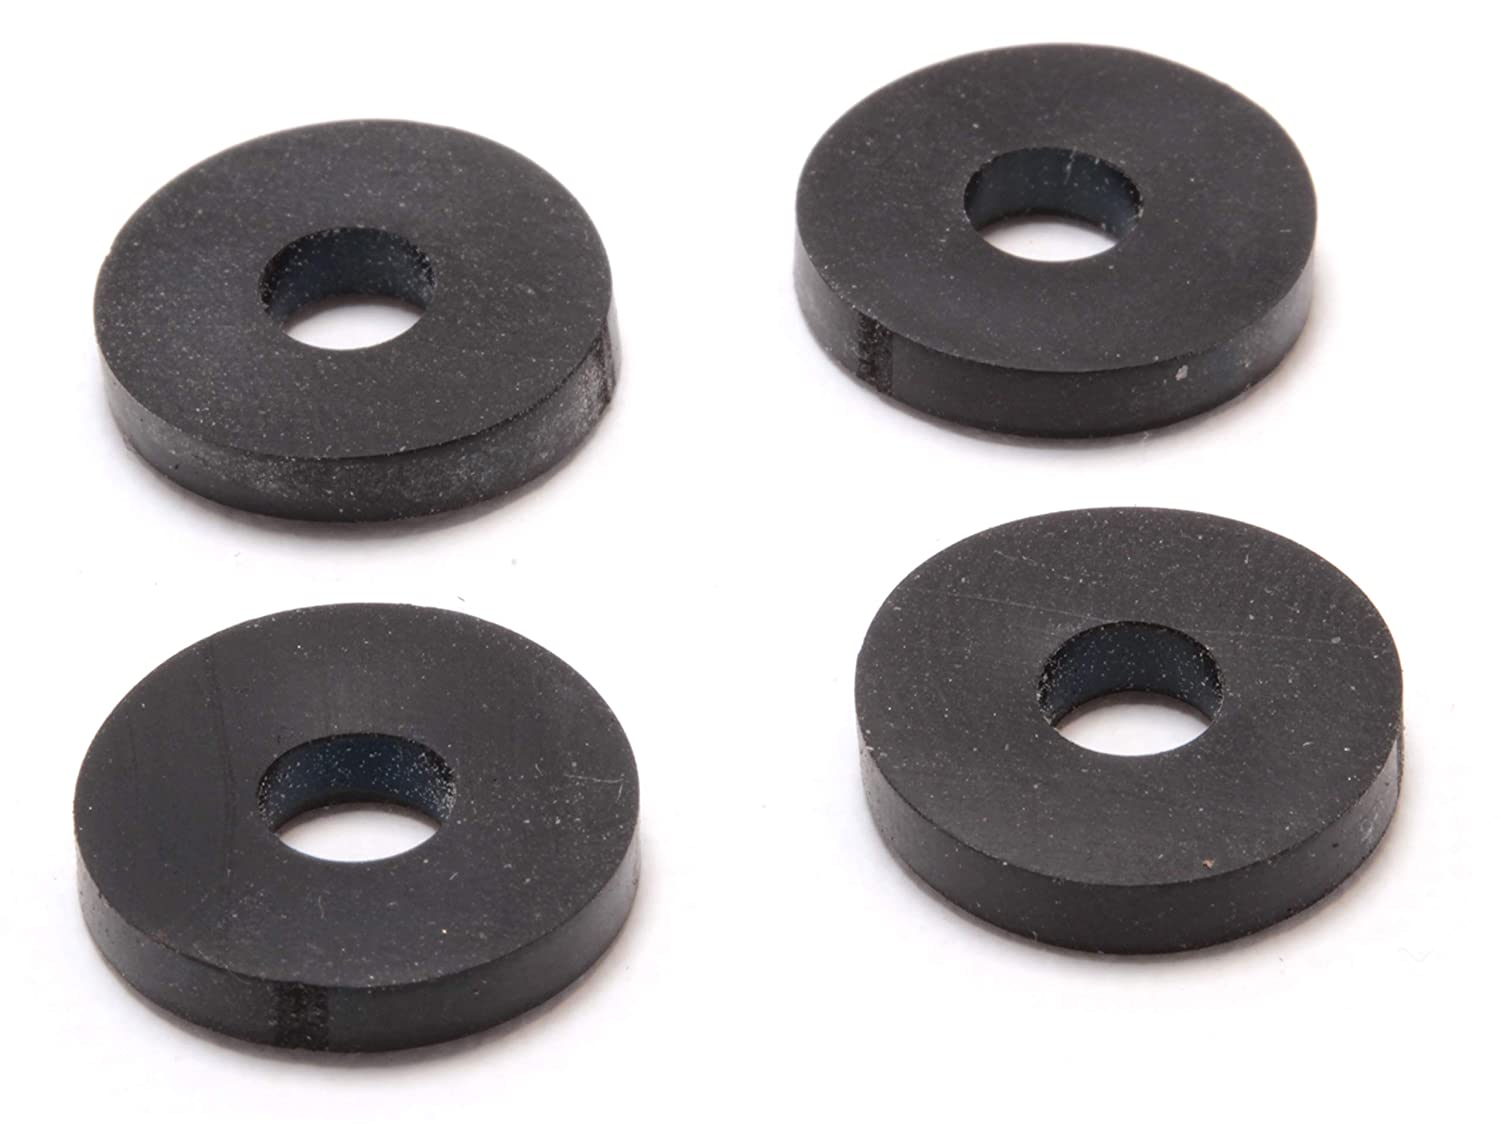 1//4 x 5//8 OD EPDM Rubber Washers, by Bolt Dropper 3//32 Thickness 100 Pack Neoprene Washers Neoprene Choose Size